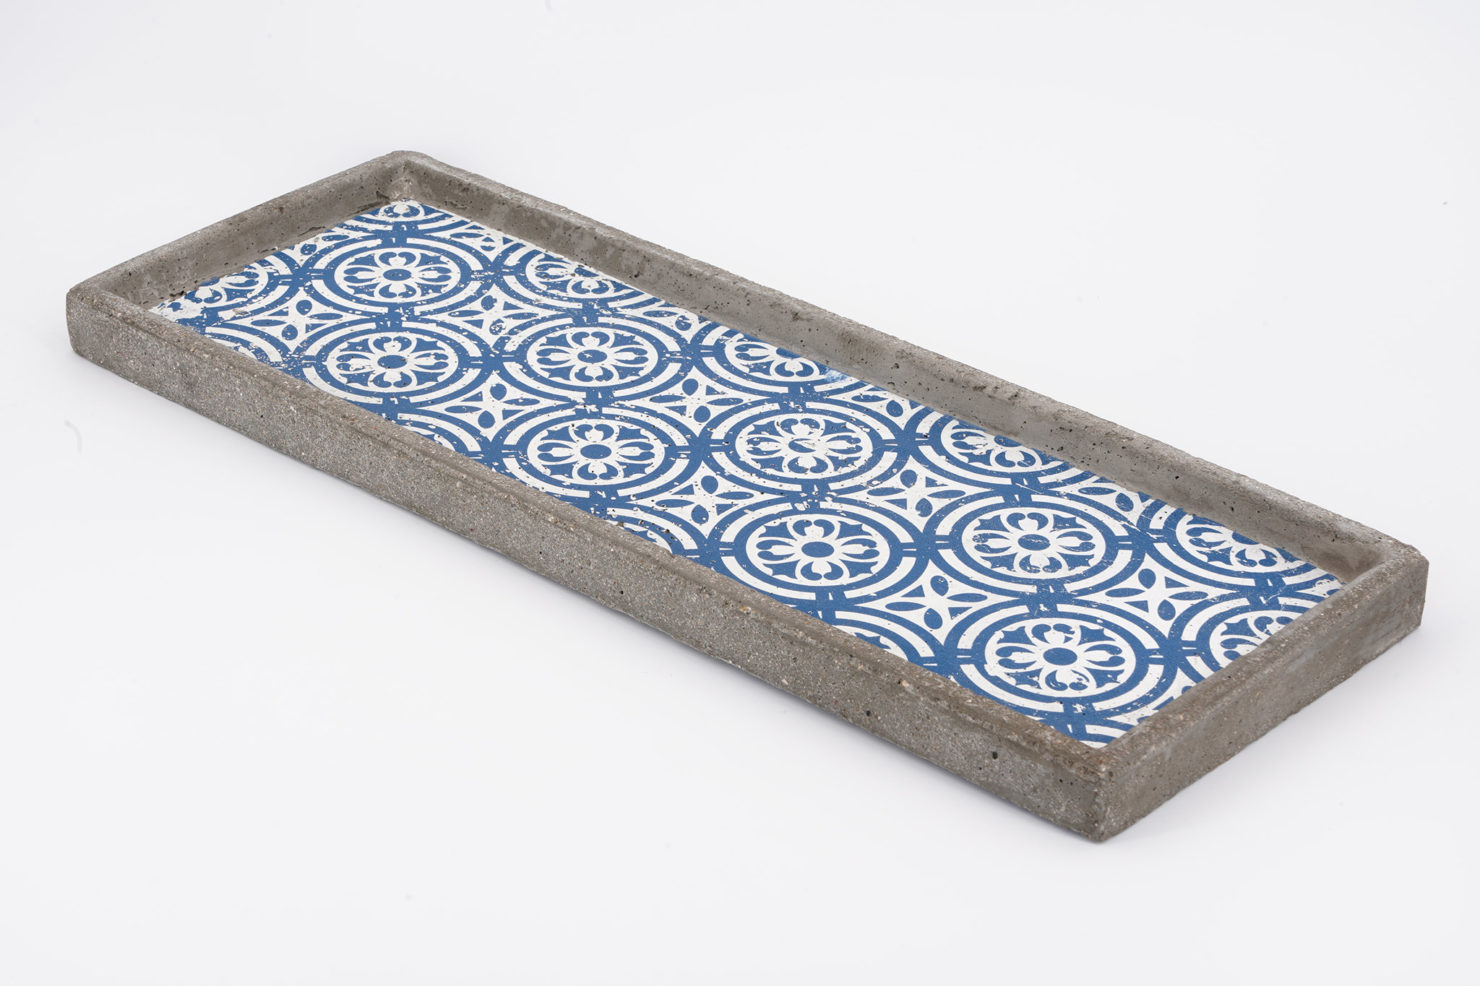 TRAY BLUE CONCRETE 49X18X2,5 CM - BY ROOM